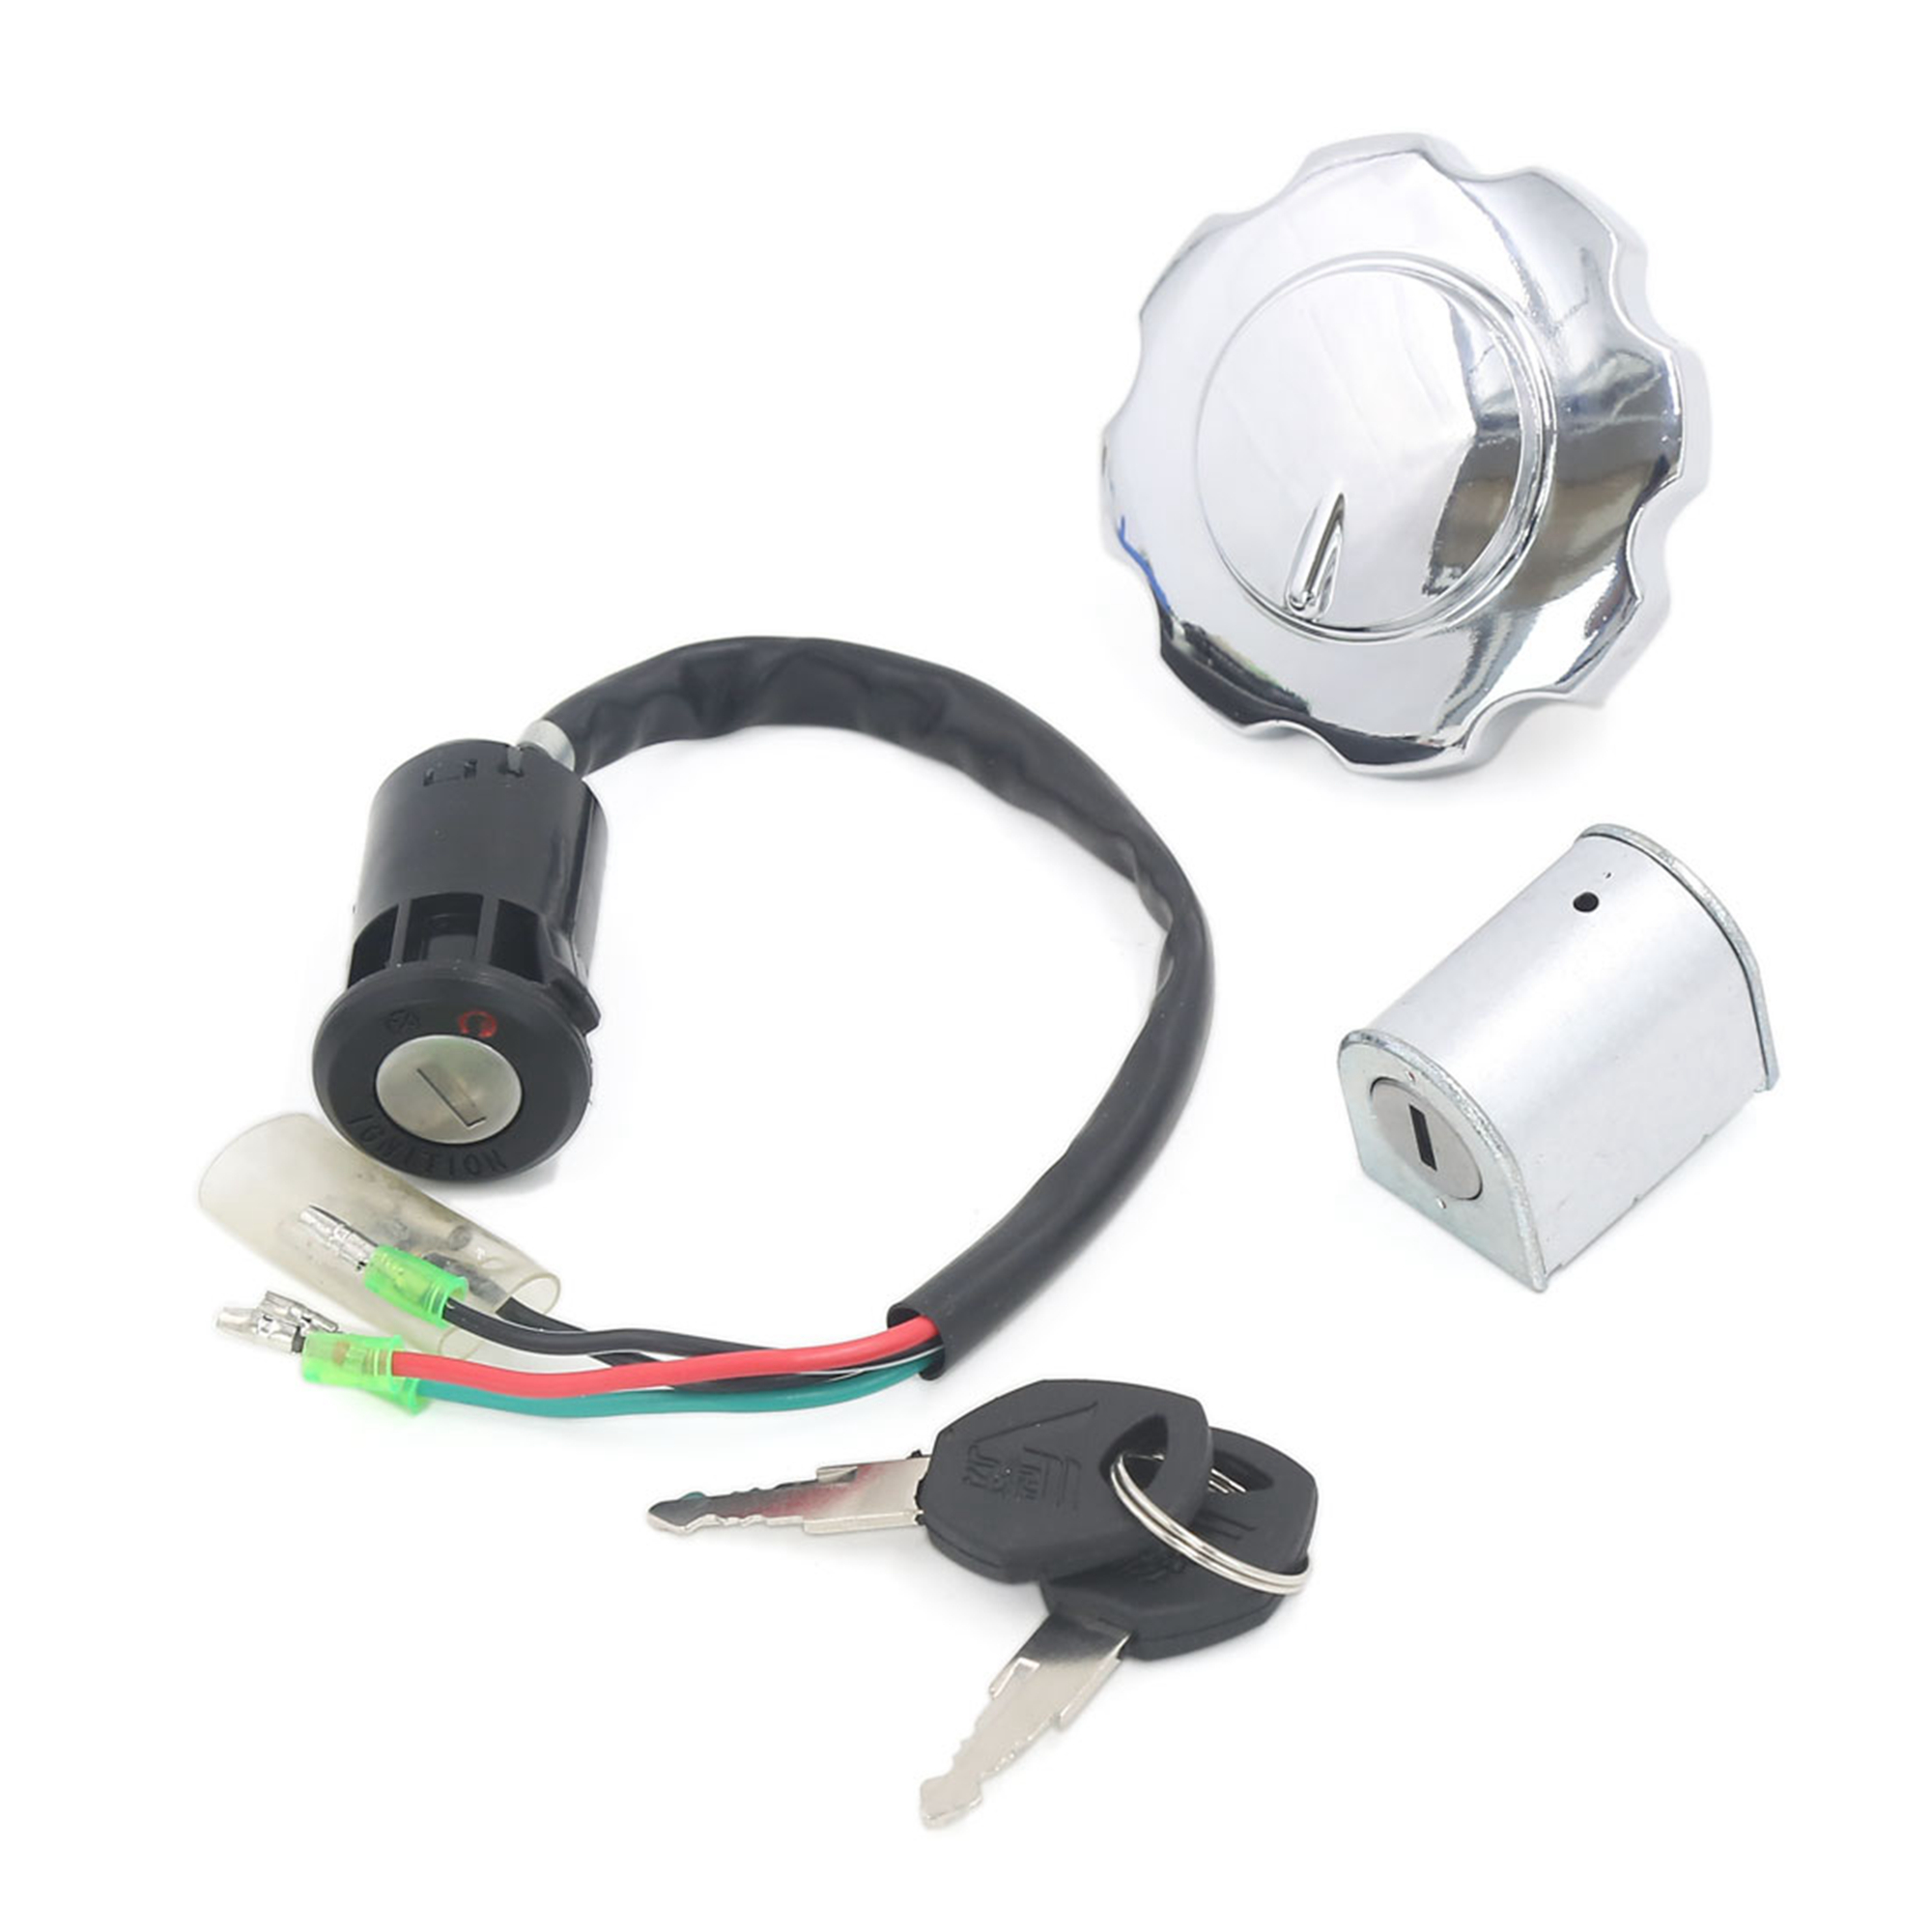 Motorcycle Ignition Switch Fuel Tank Cap Lock Set w Keys Fits for CG-125